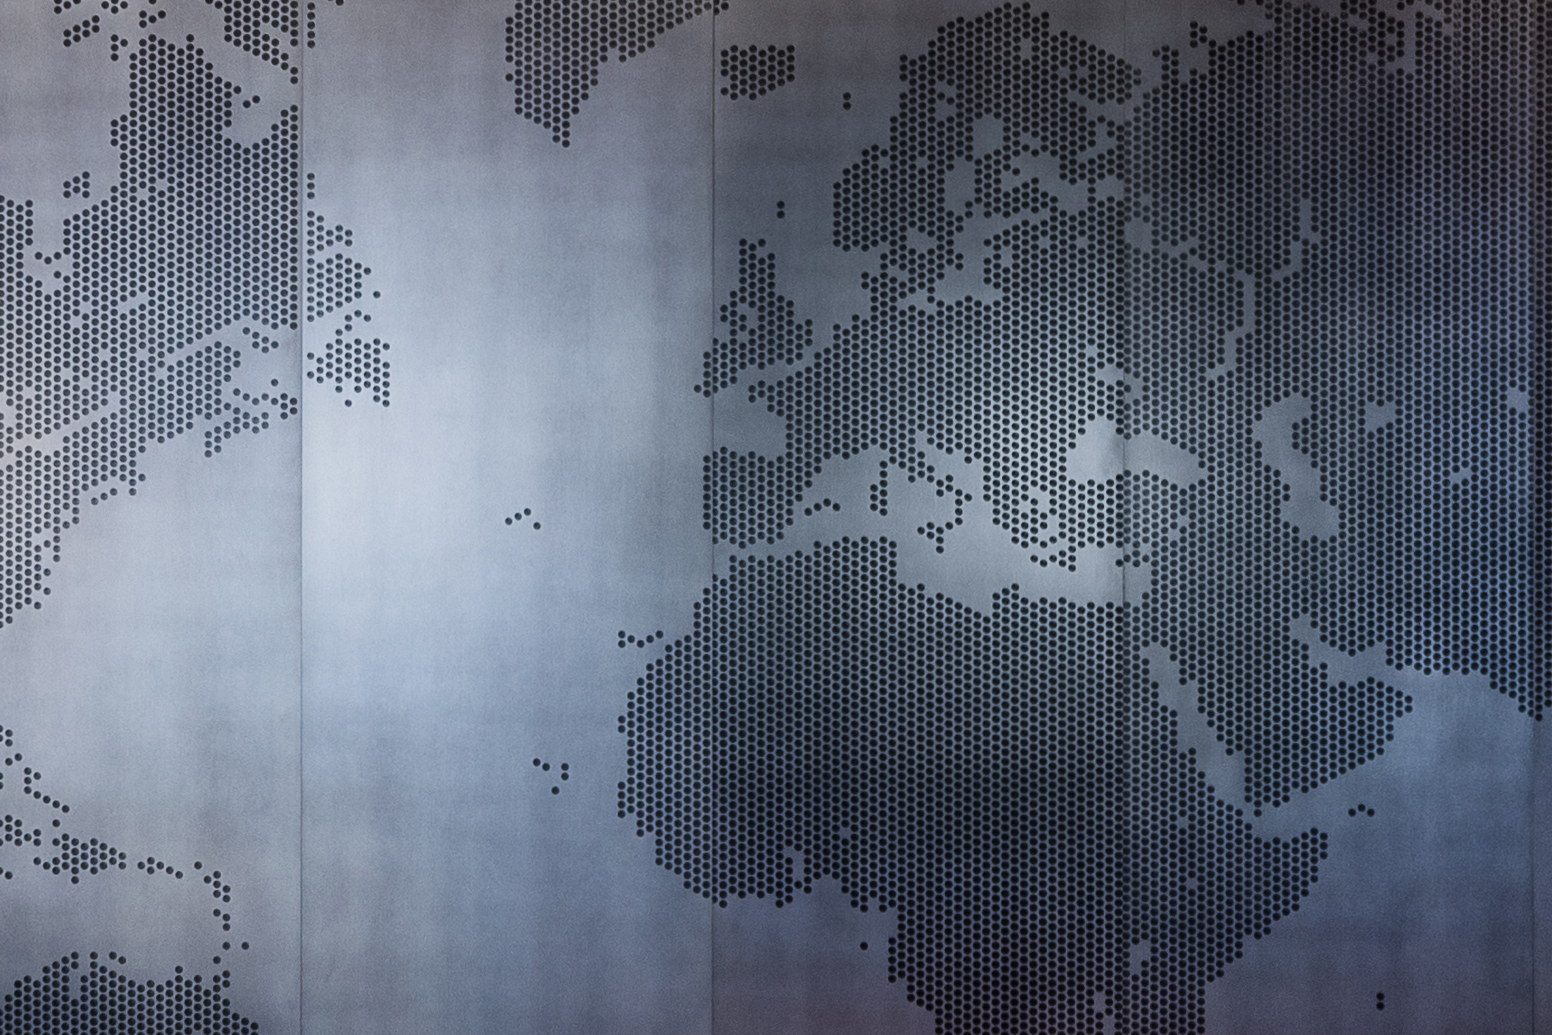 Laser Etched World Map